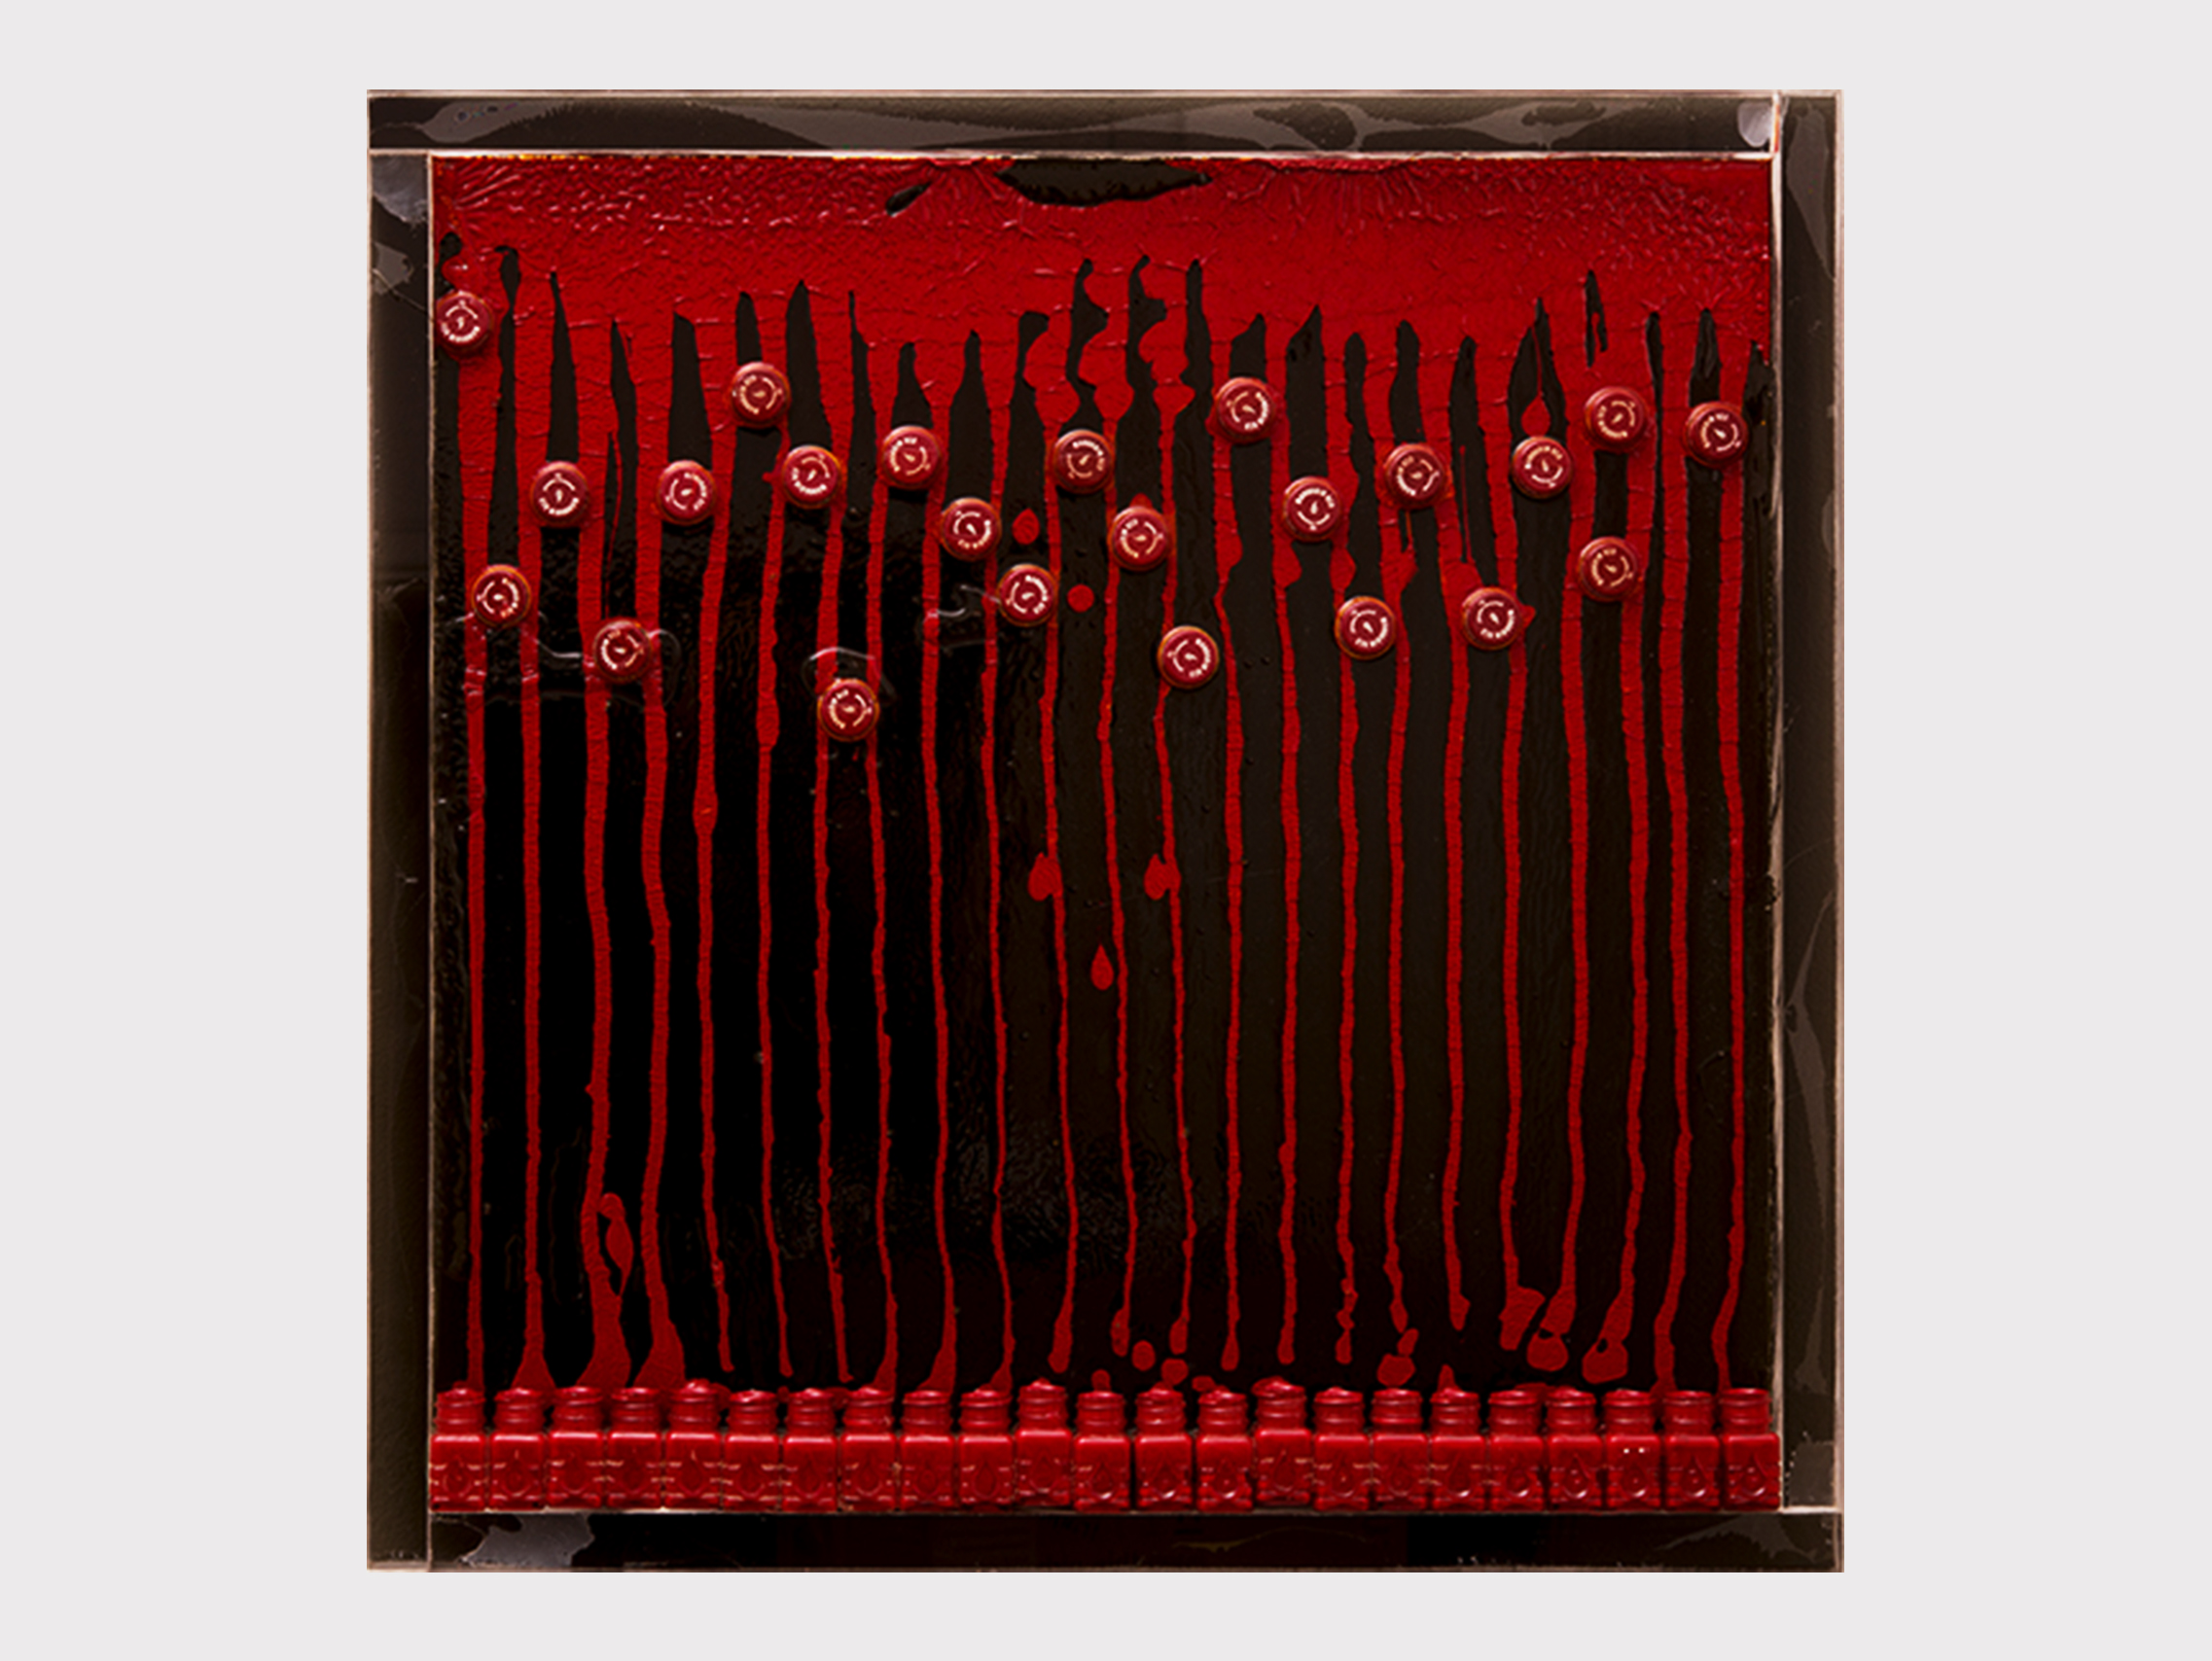 "Arman  Untitled (Mandarin Red) , 1968 Accumulation of acrylic paint, paint bottles and caps in resin on Plexiglas 61 x 61 cm  ""An incredibly beautiful painting, which was ""painted"" by allowing the paint – a colour that looks almost like bright red nail polish – to run out of the tube. The red also echoes the year 1968, when this work was created. It's vibrantly exuberant – Arman loved colour, and van Gogh was his big hero. He even began to sign his works with his first name,  'Arman' , just like  'Vincent' . However, he didn't do any actual painting himself, instead, giving the force of the colour free reign, allowing it to be independent."""